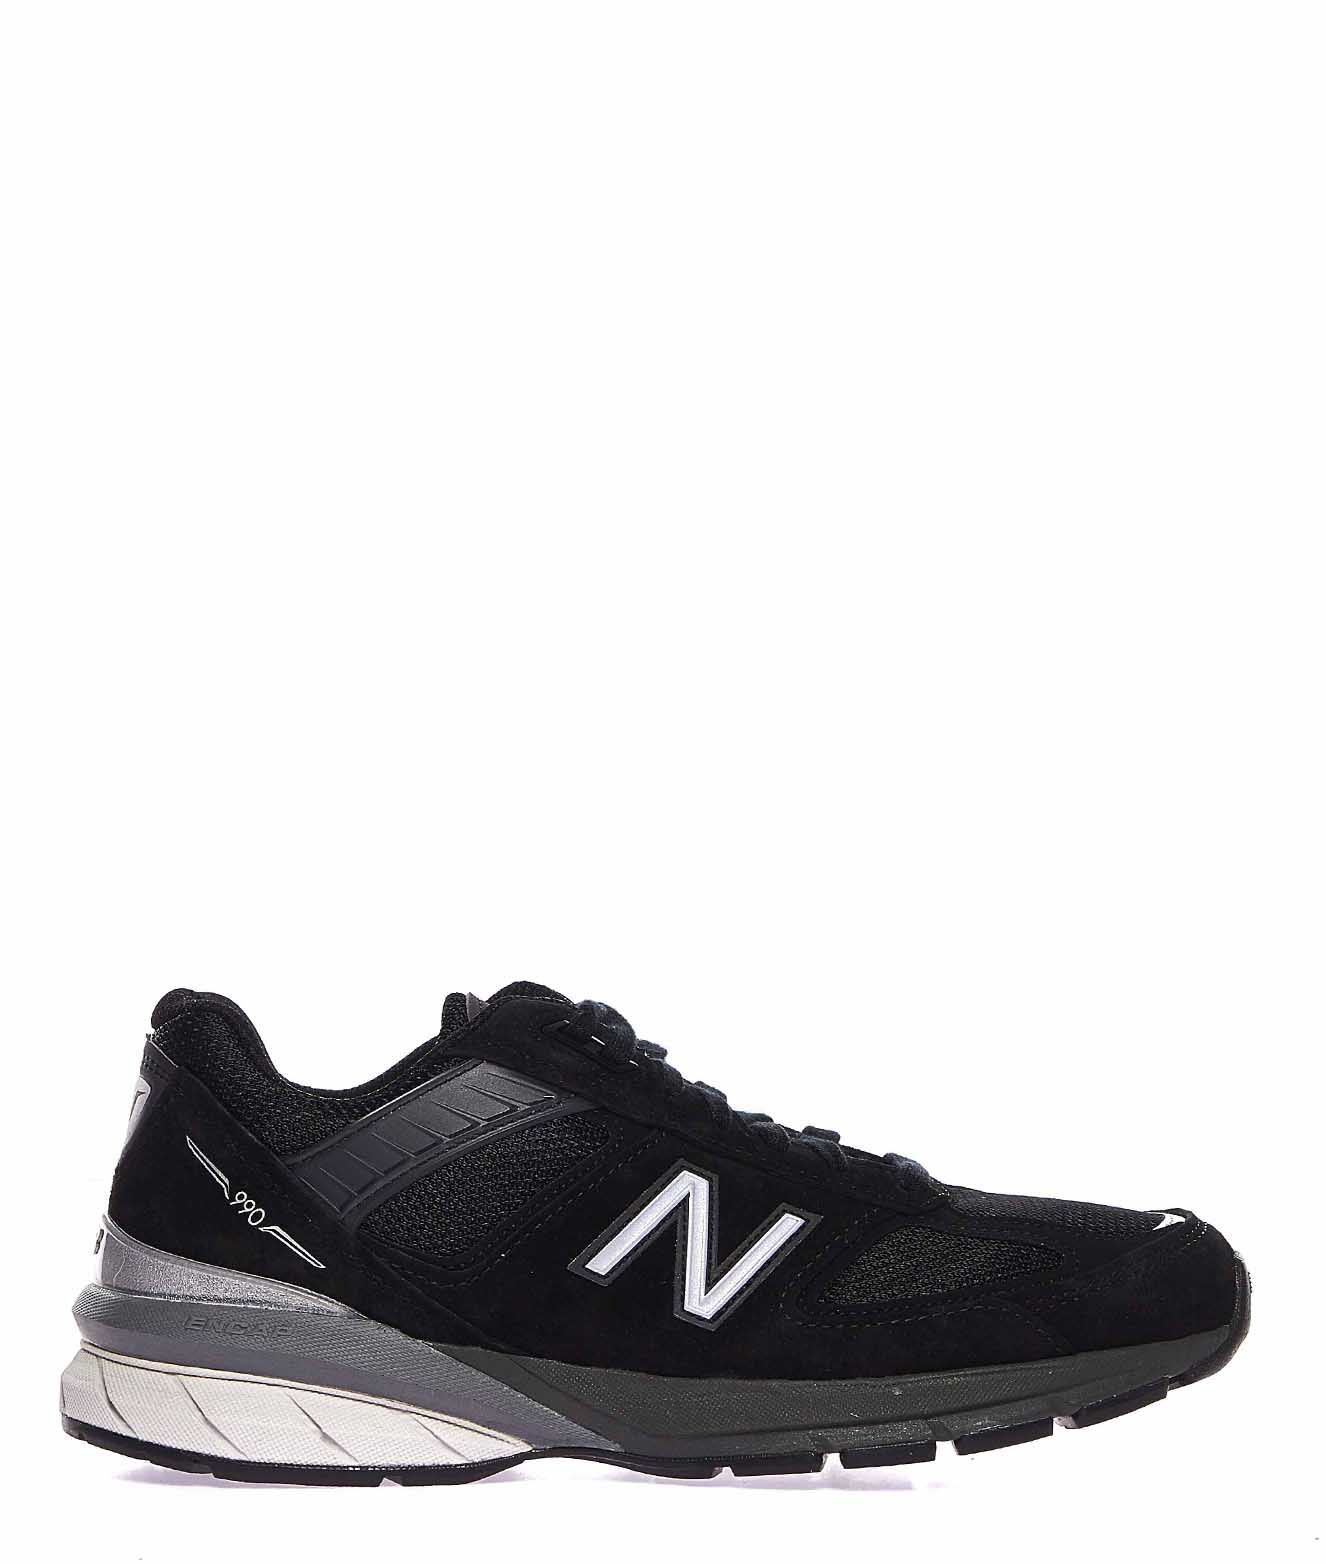 New Balance BLACK SUEDE SNEAKERS